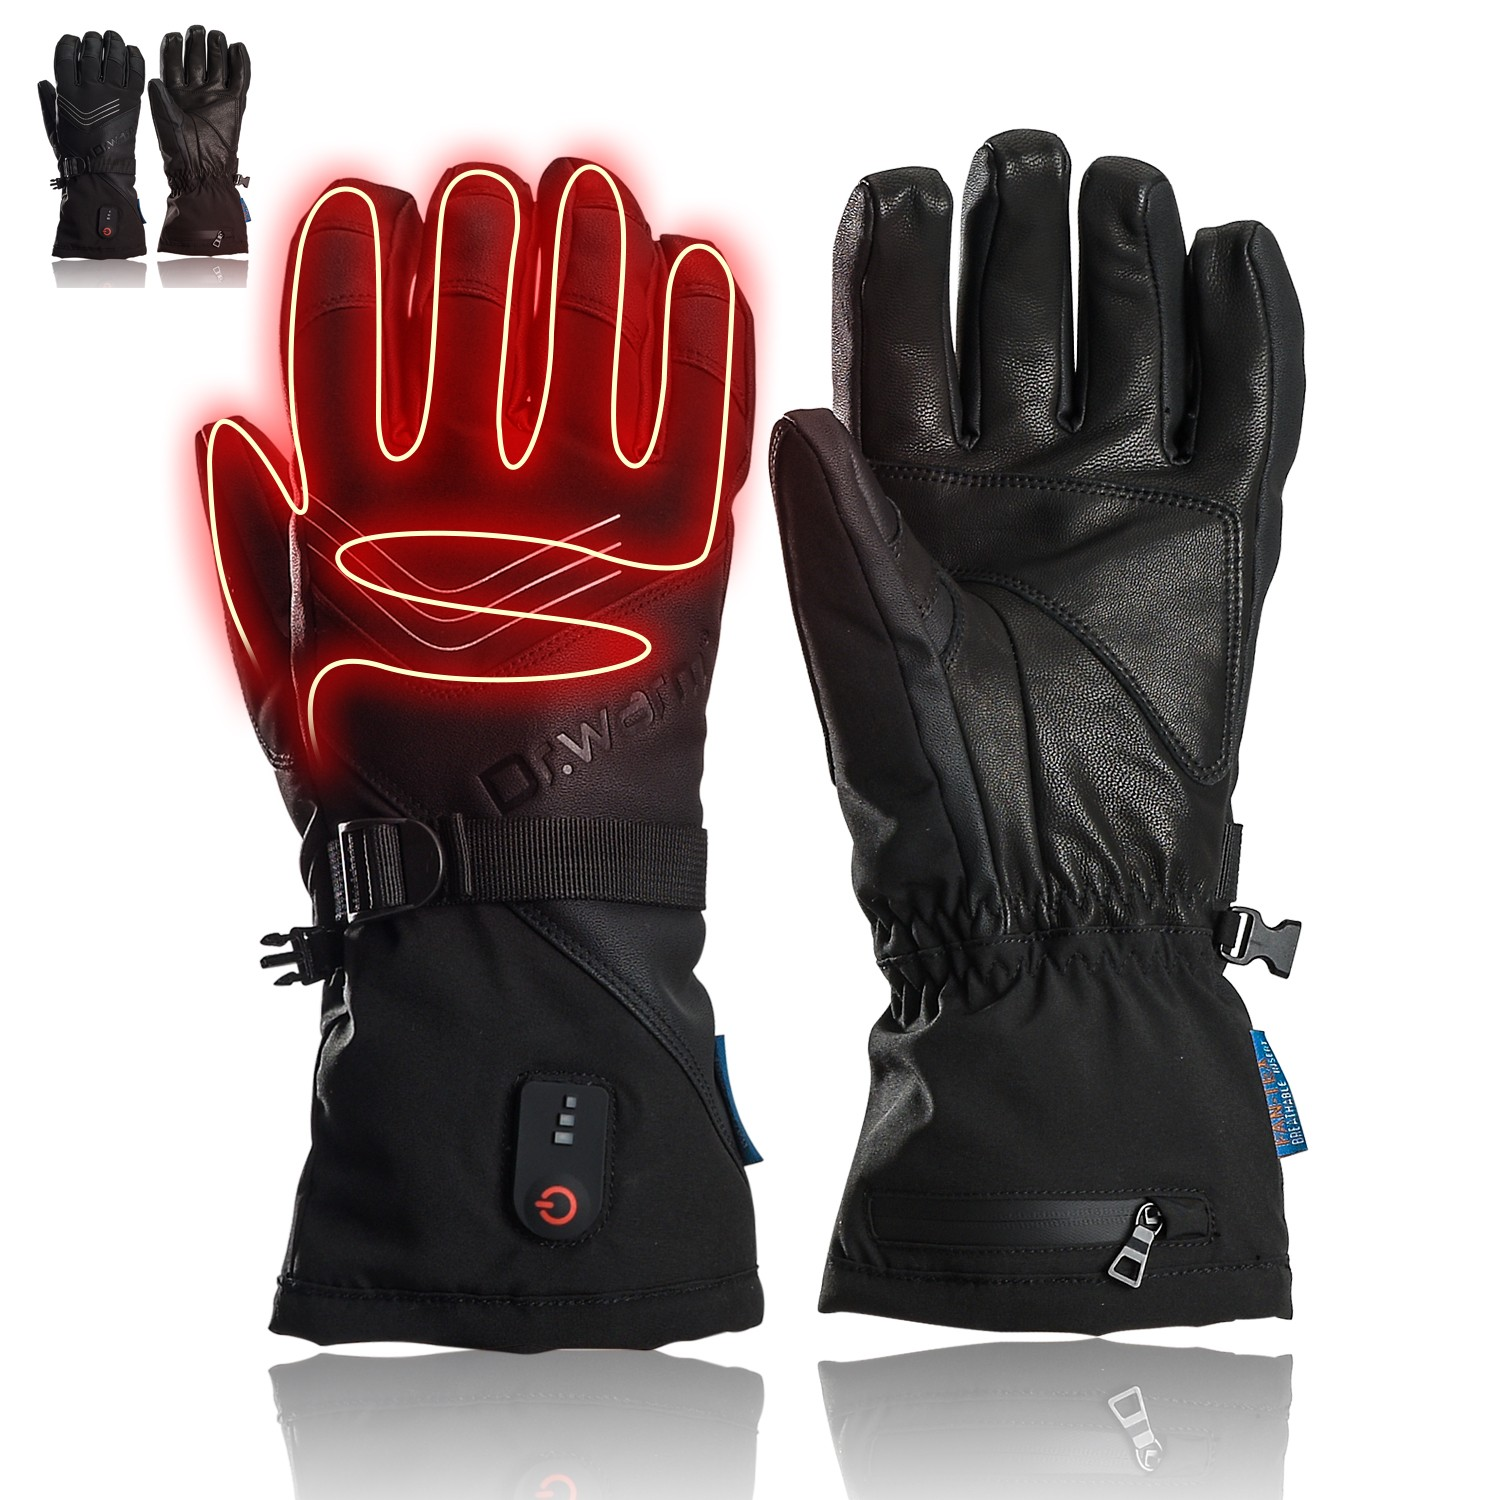 Dr. Warm suitable battery gloves for indoor use-11